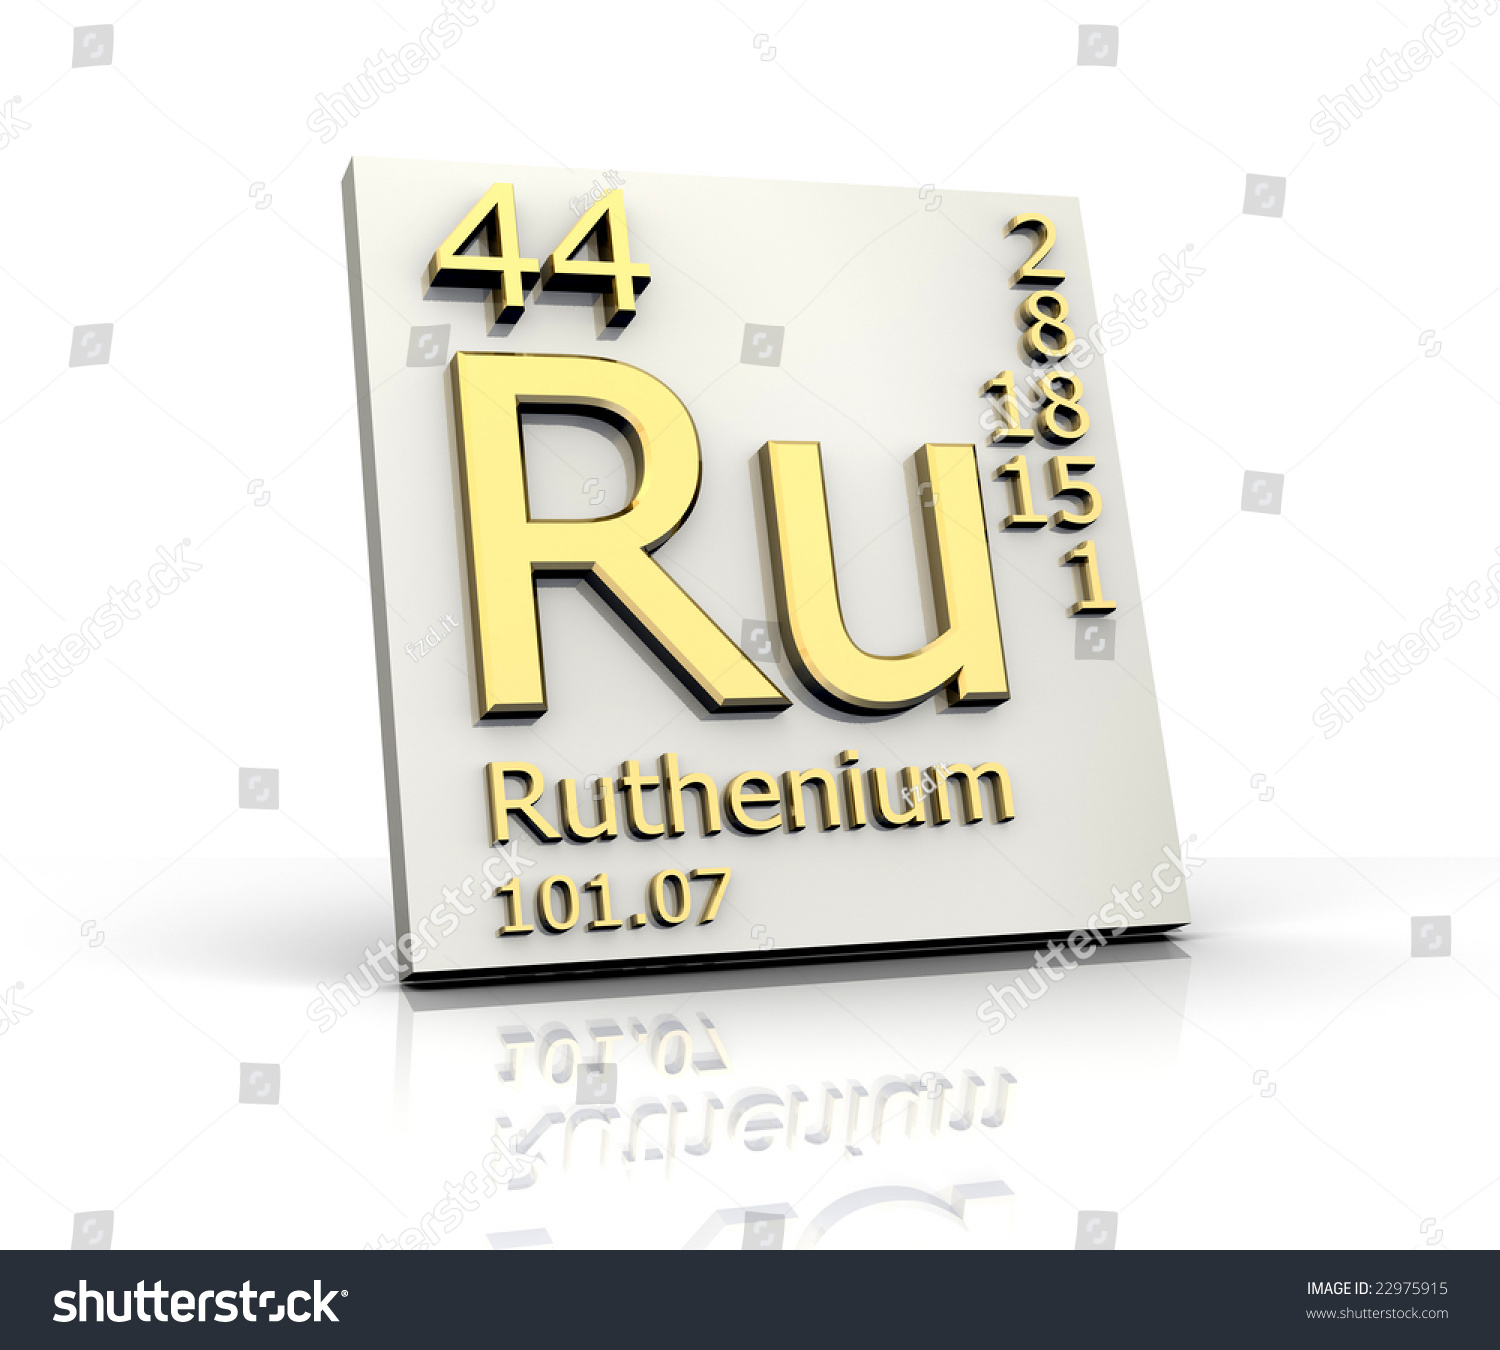 Ruthenium form periodic table elements stock illustration 22975915 ruthenium form periodic table of elements gamestrikefo Choice Image